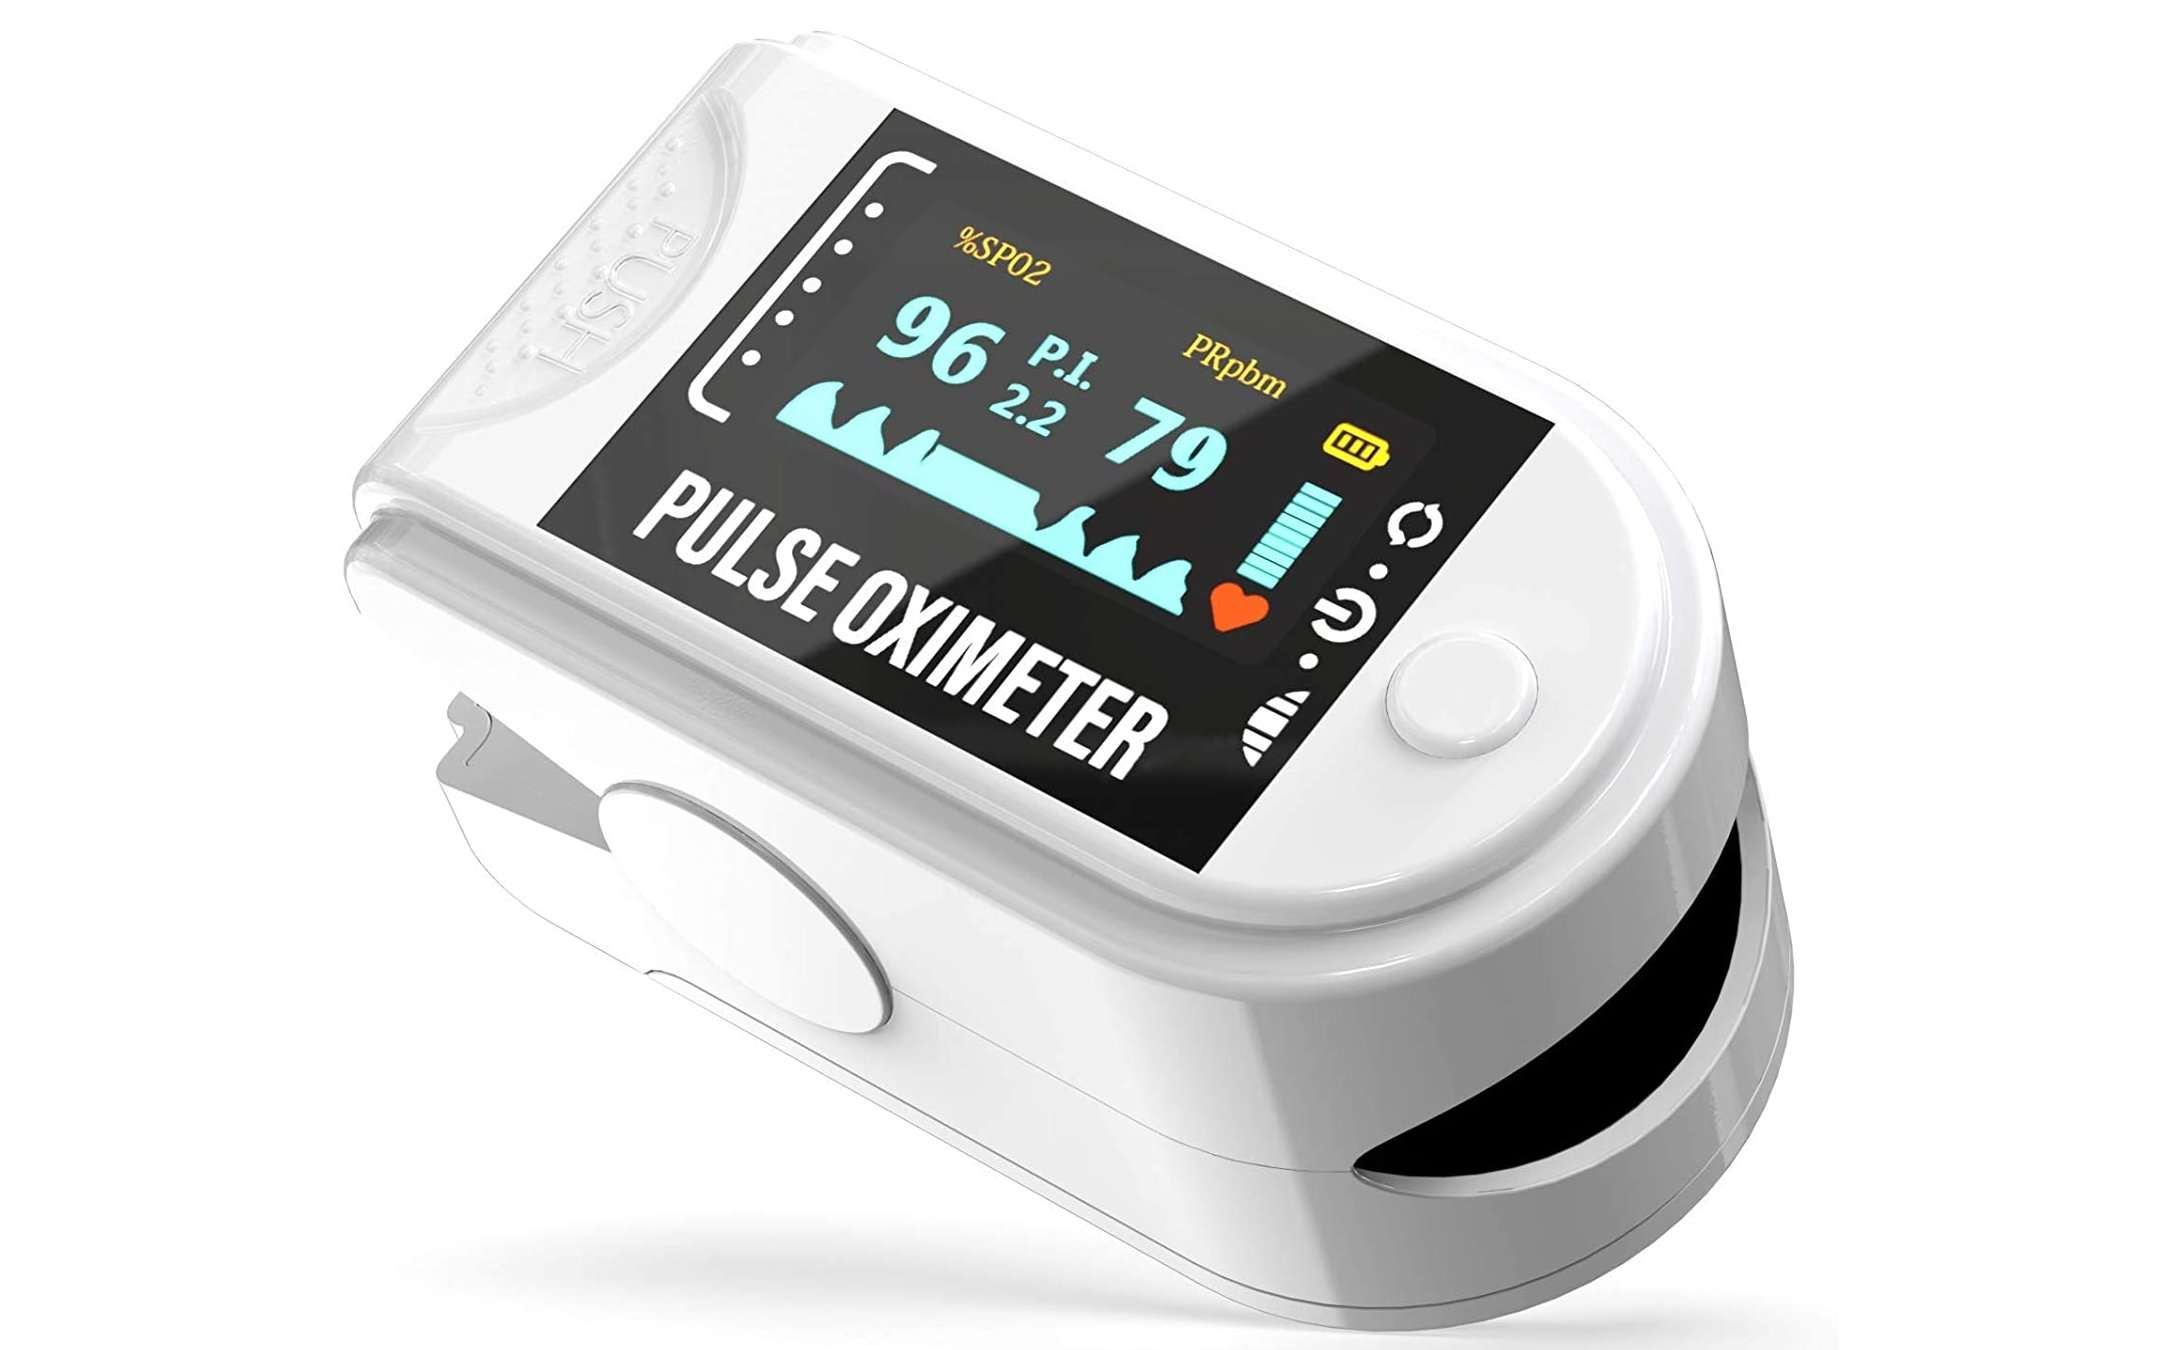 Eastronic, oximeter at the best price ever